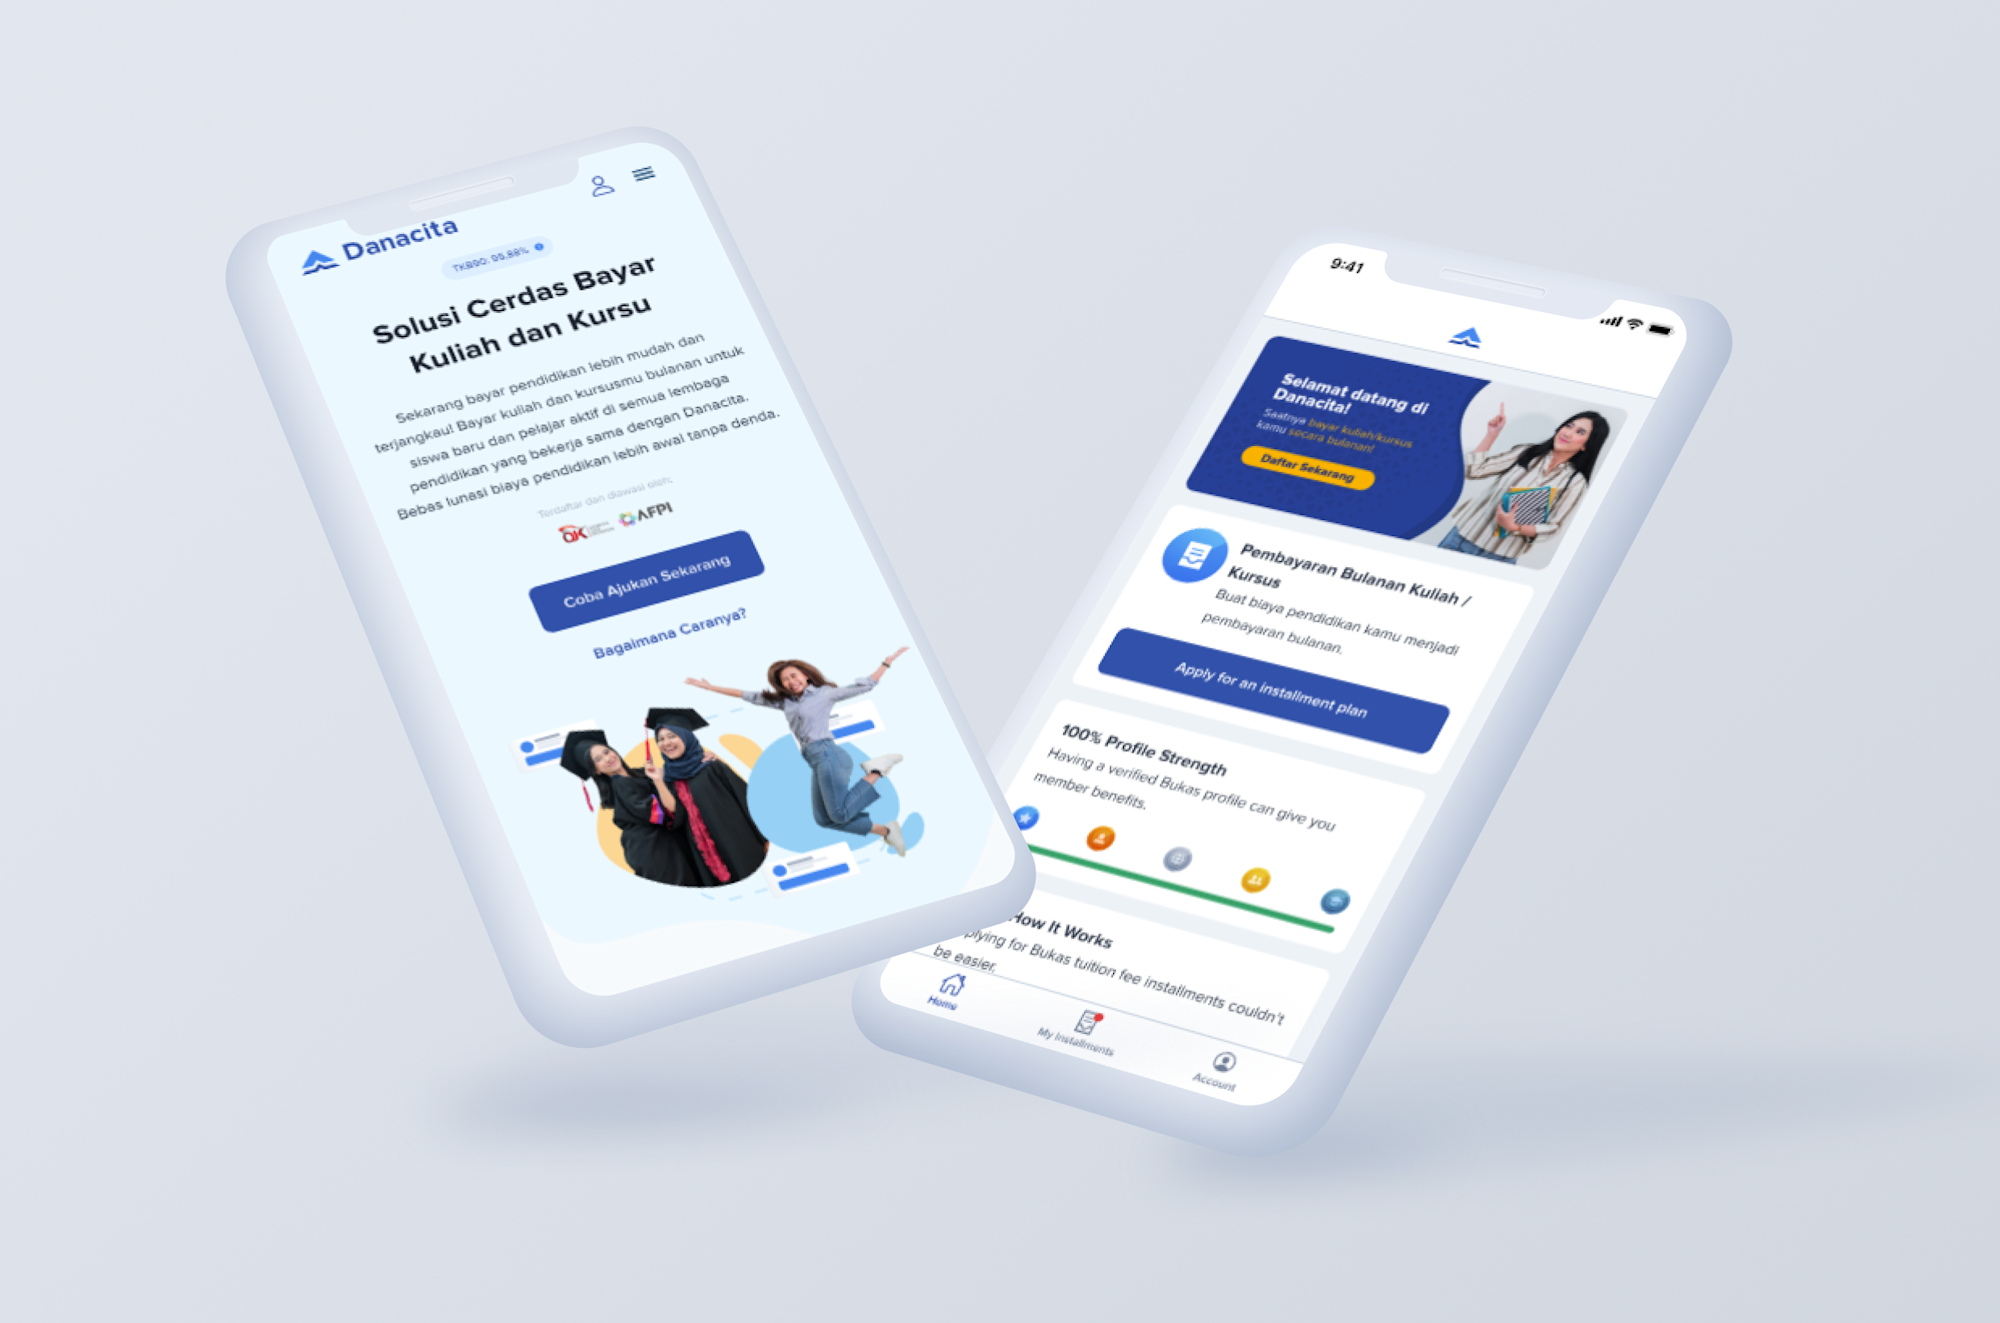 ErudiFi raises $5 million Series A to give students in Southeast Asia more education financing options